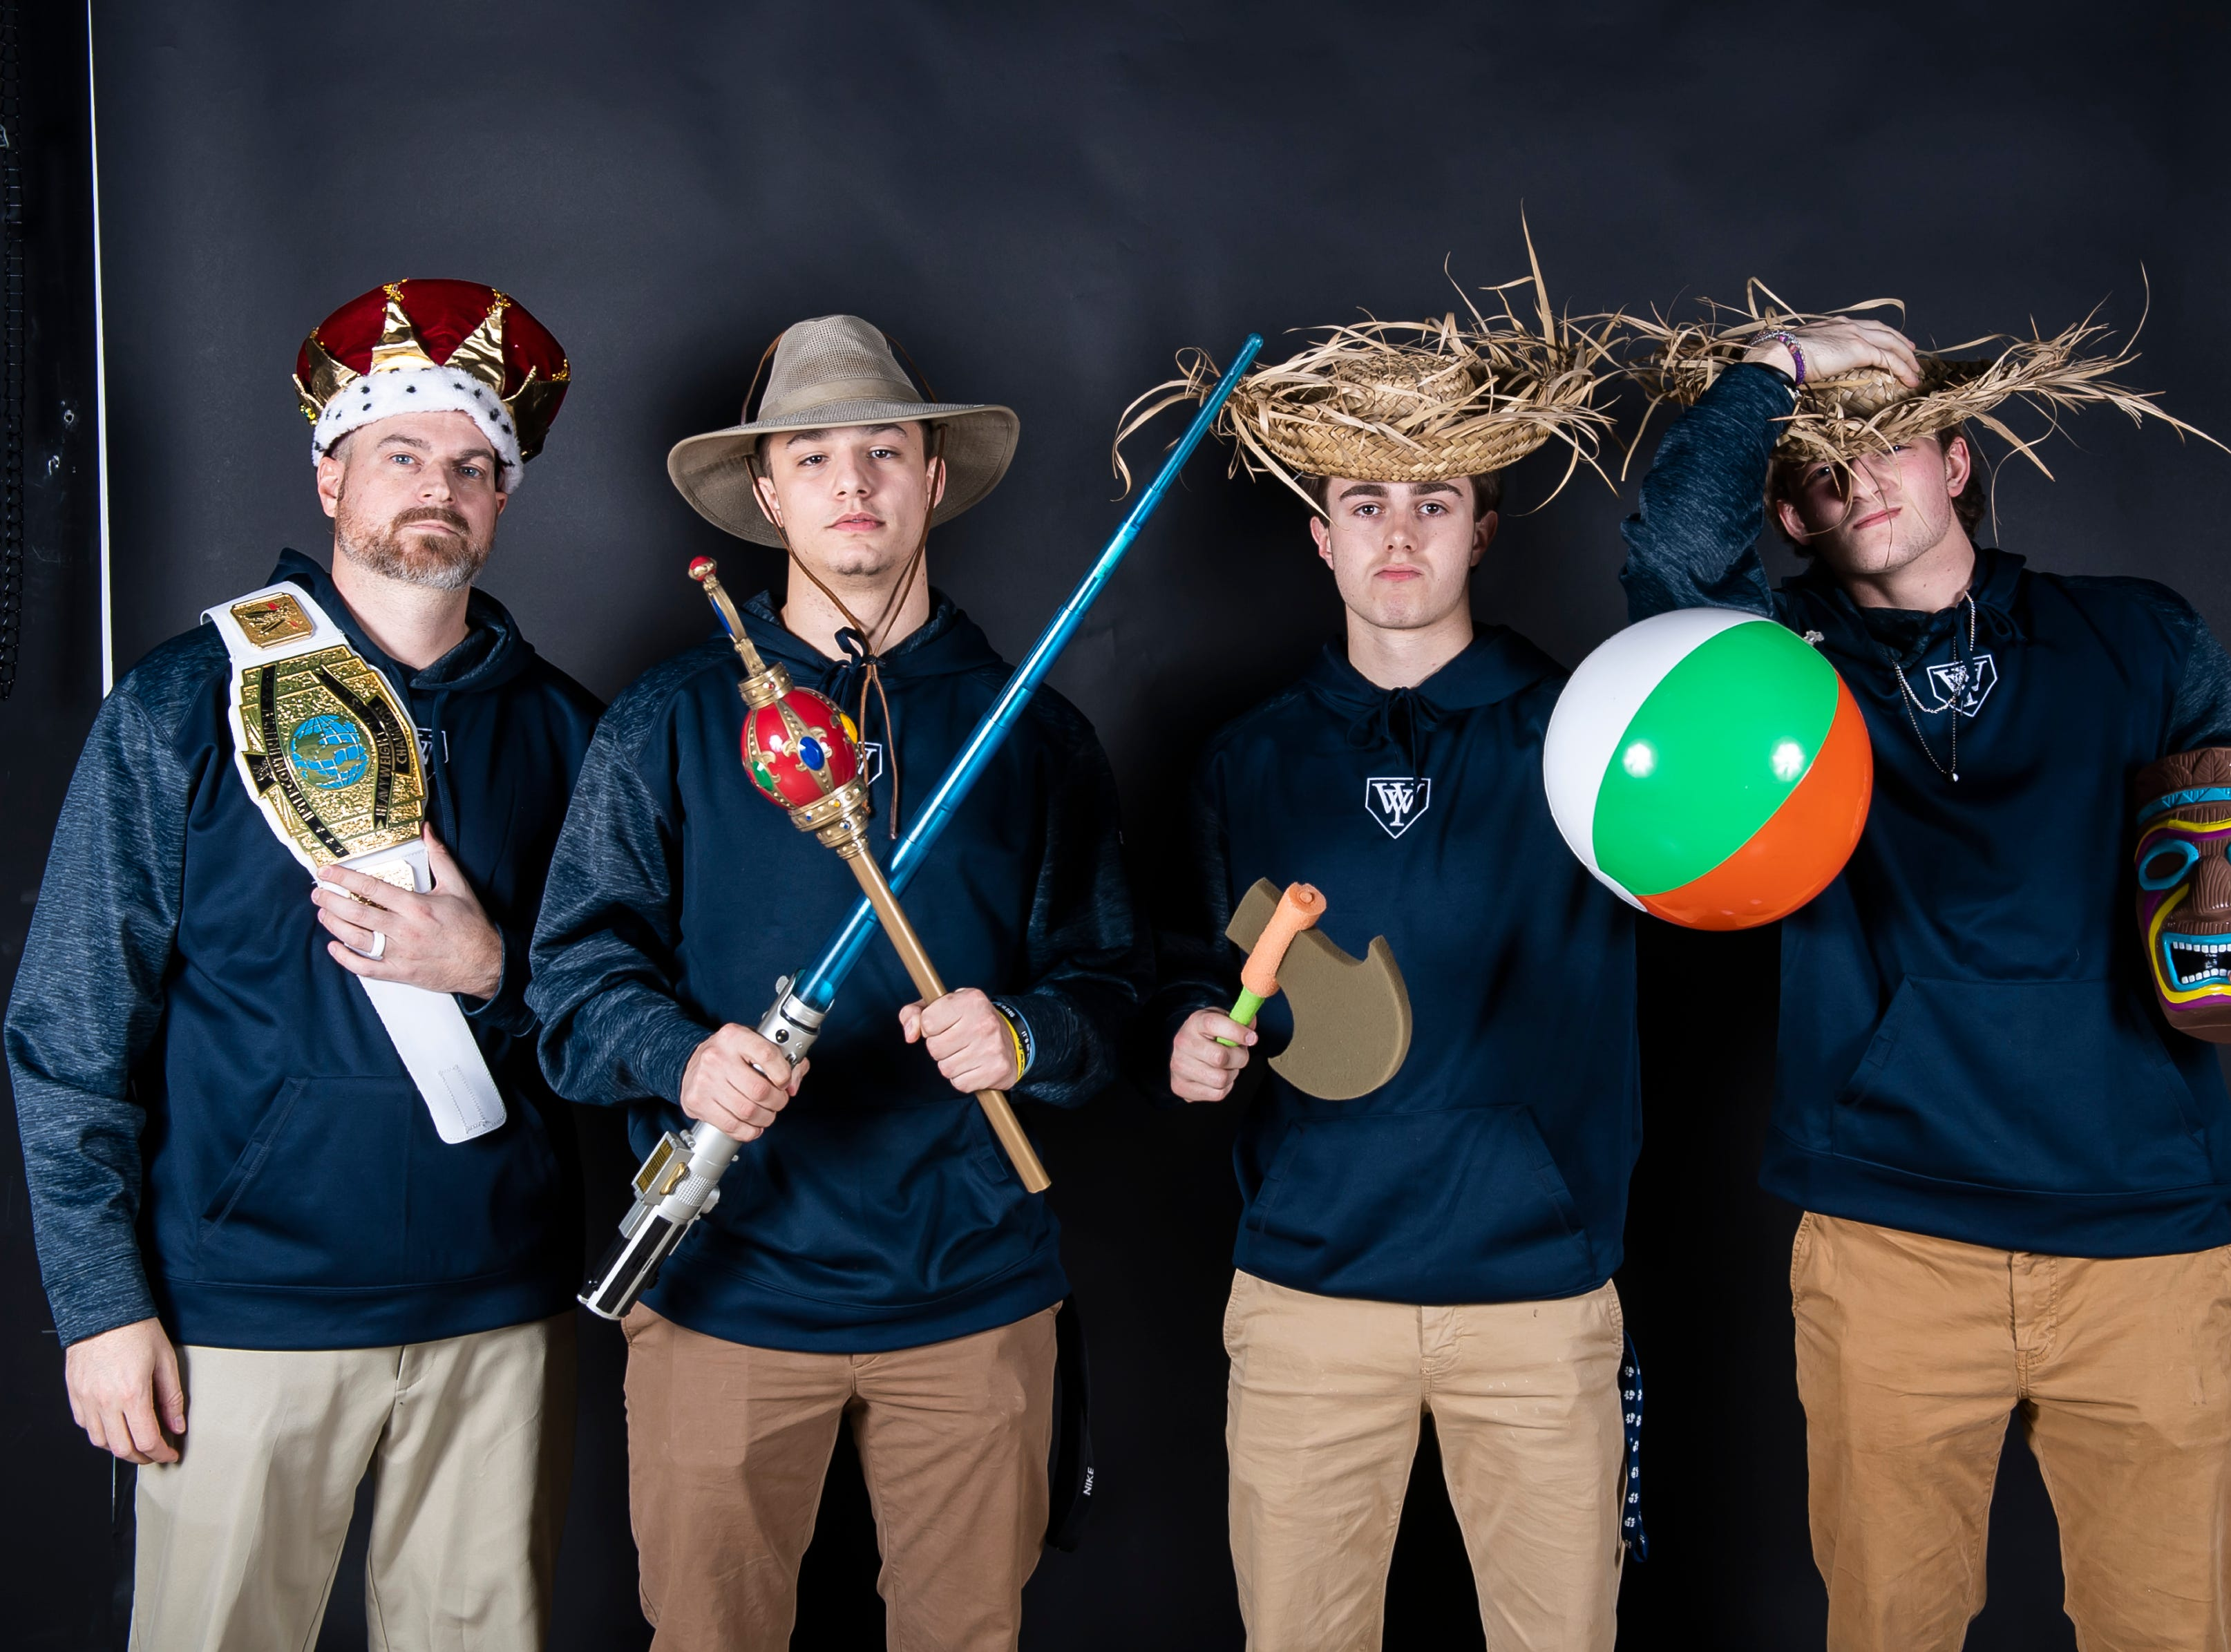 The West York baseball team strike a pose in the GameTimePA photo booth during spring sports media day in York Sunday, March 10, 2019.